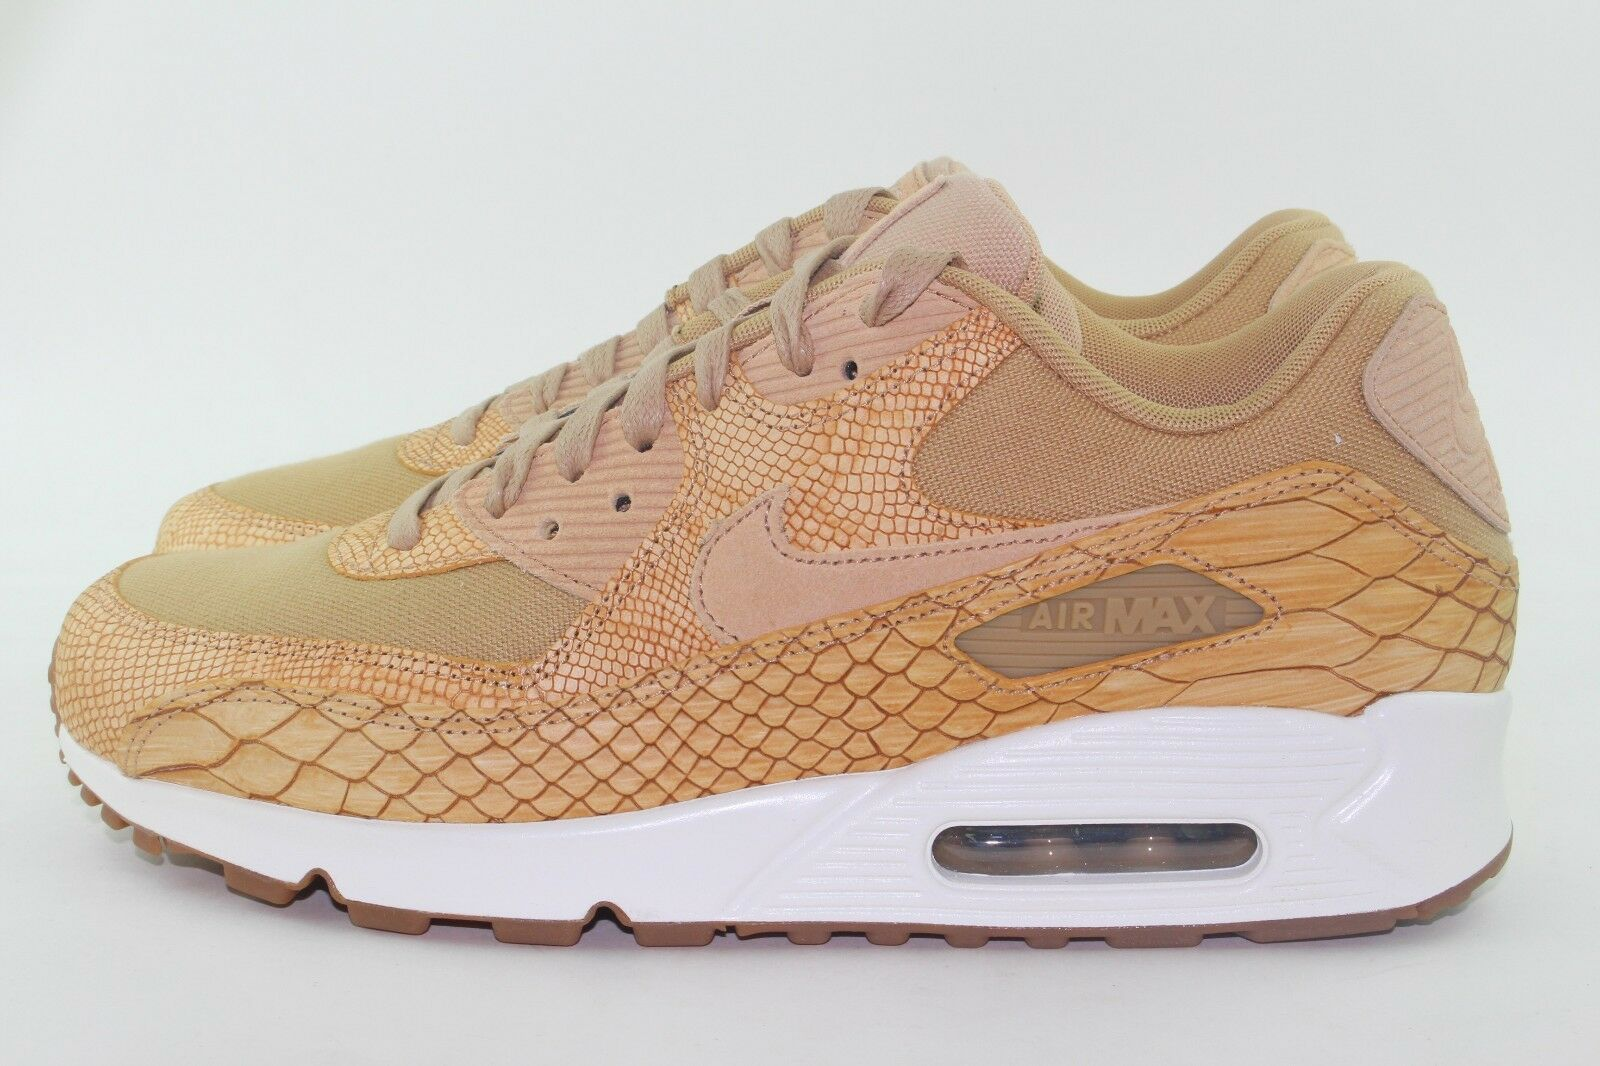 NIKE AIR MAX 90 PREMIUM LEATHER homme 8.5 VACHETTA TAN NEW RARE fonctionnement COMFORT